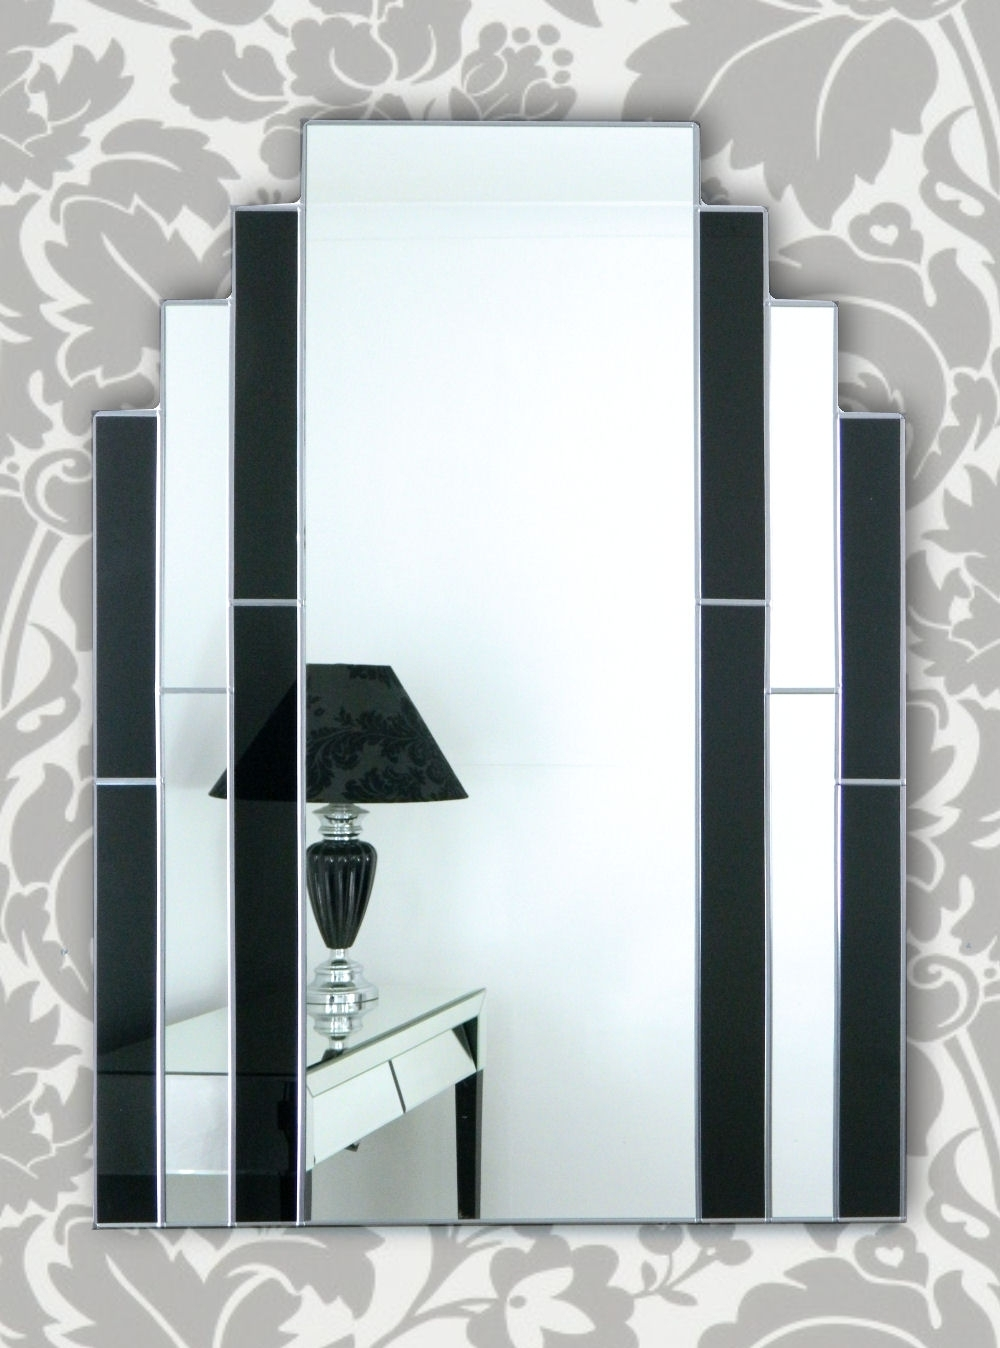 Art Deco Wall Art Intended For Famous Classic Art Deco Wall Mirror – Beyond The Galleries (View 3 of 15)